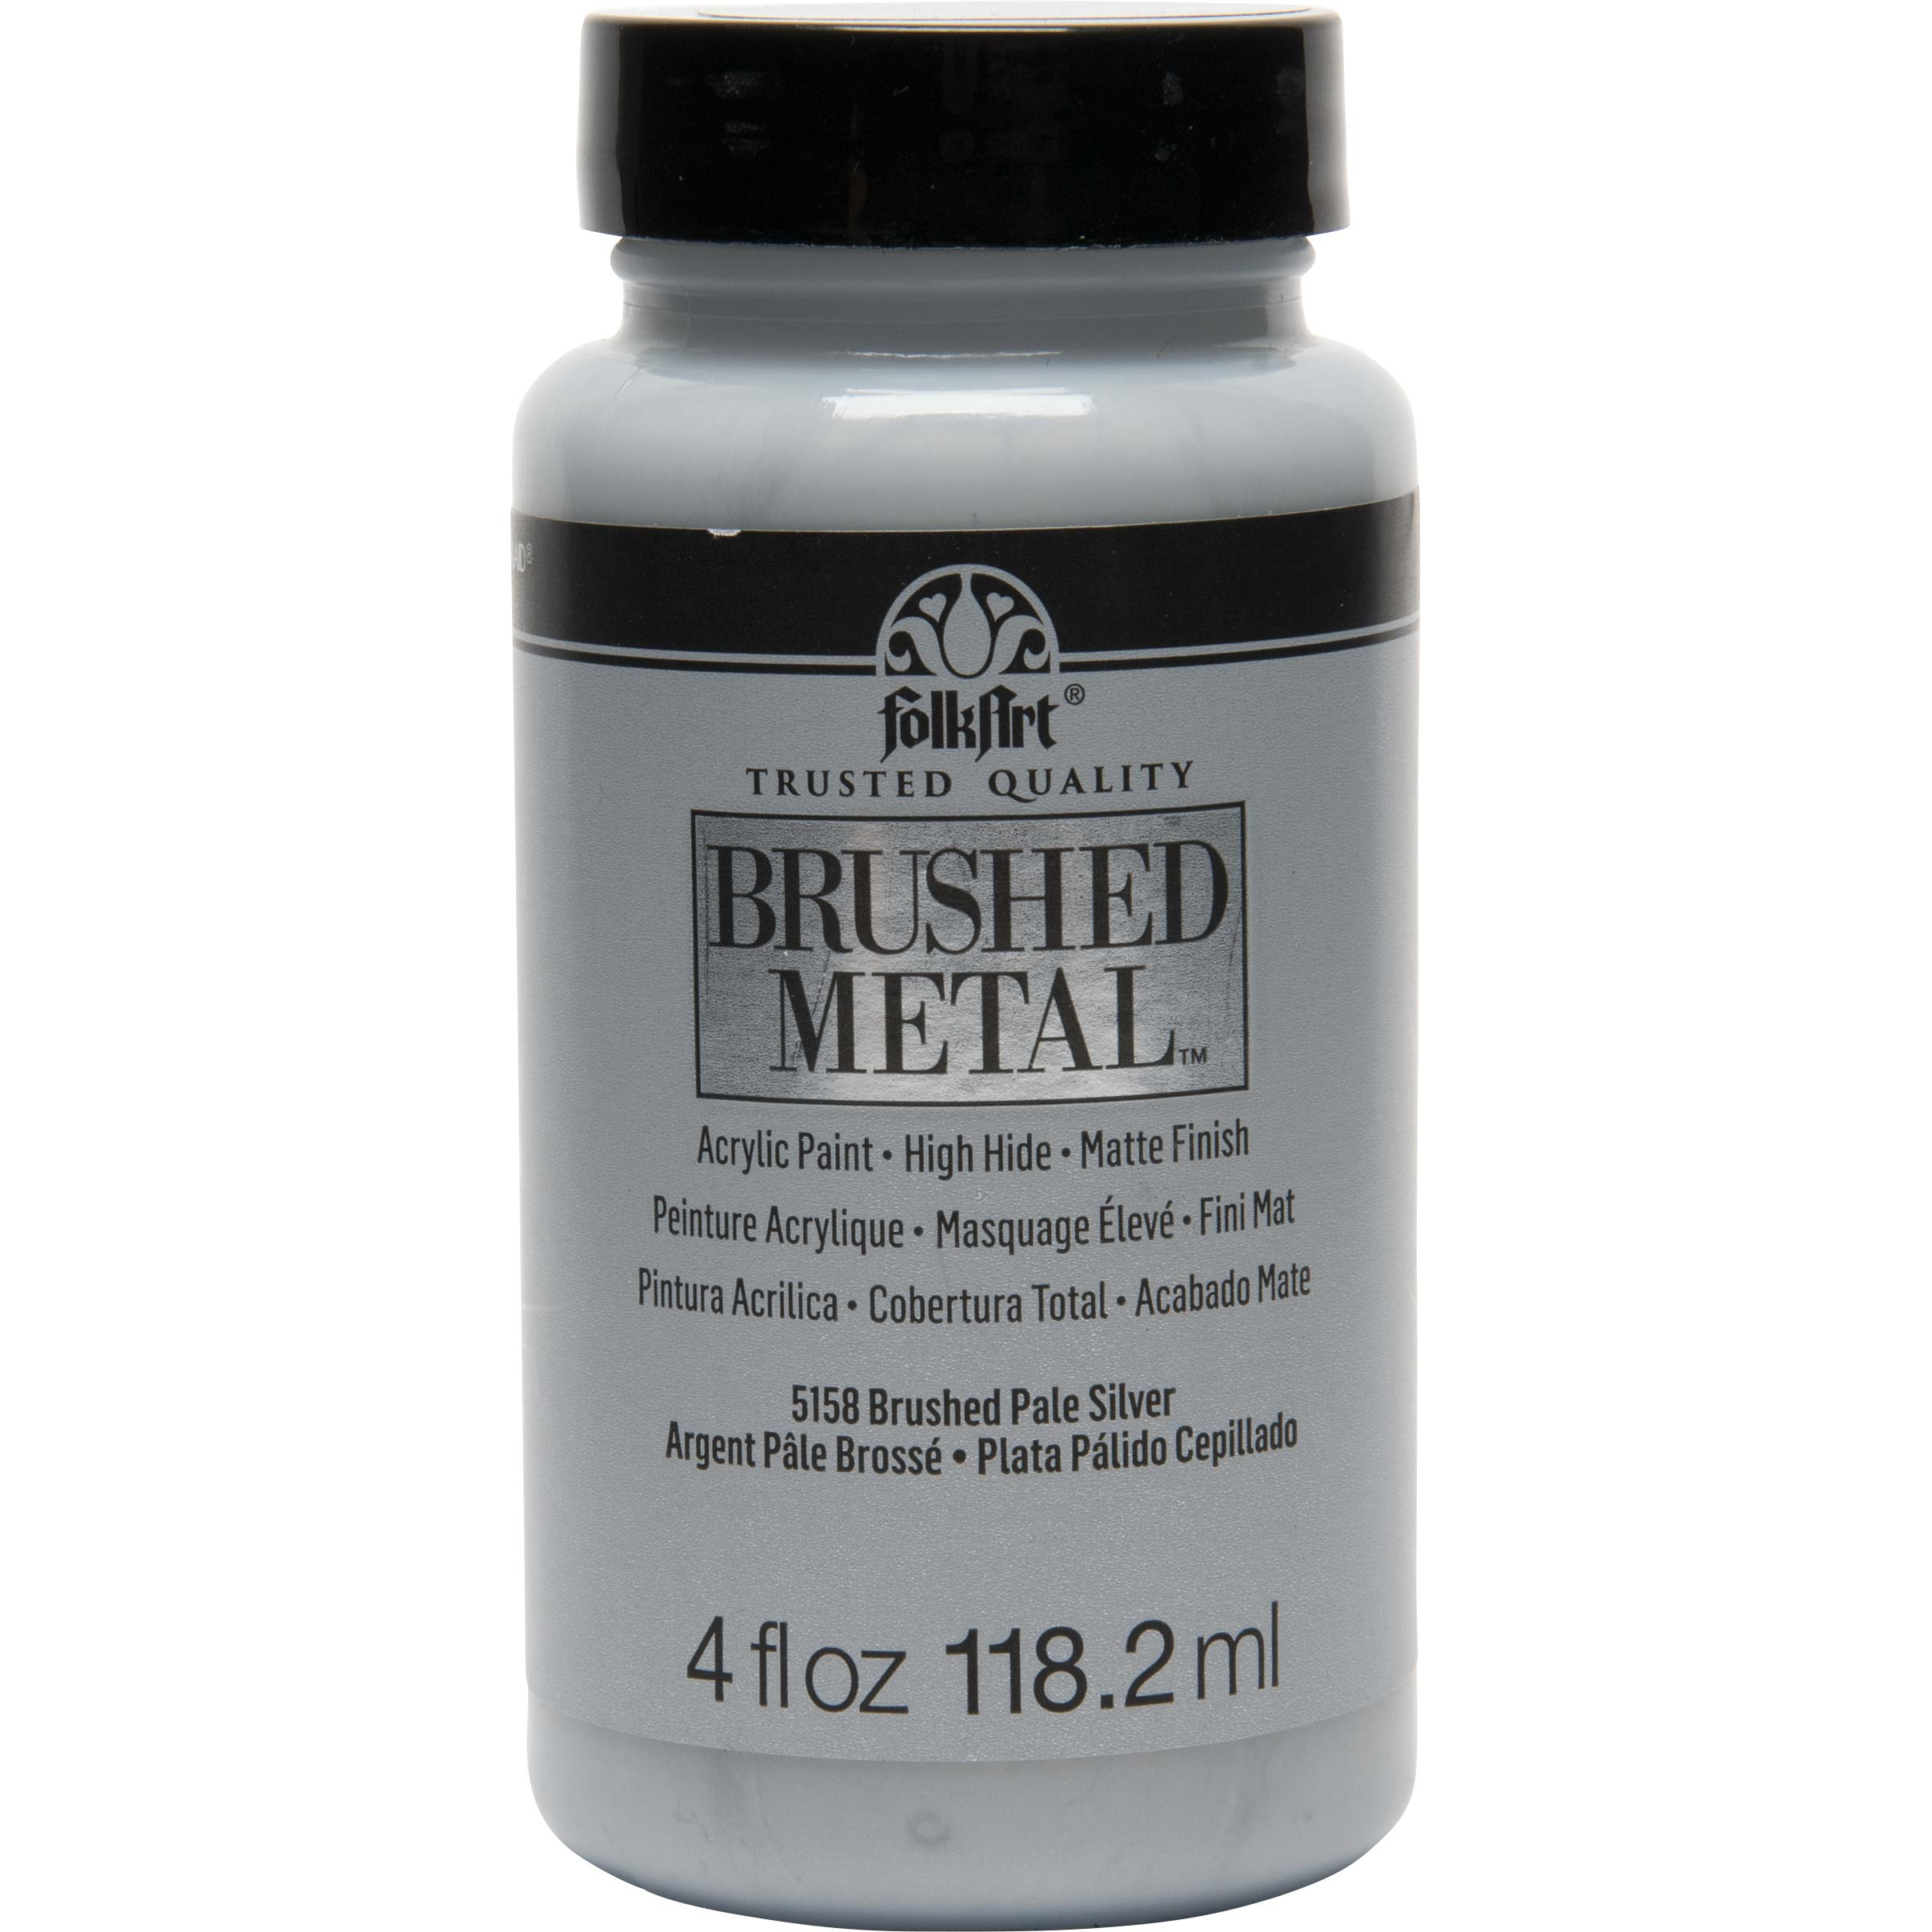 FolkArt ® Brushed Metal™ Acrylic Paint - Pale Silver, 4 oz. - 5158